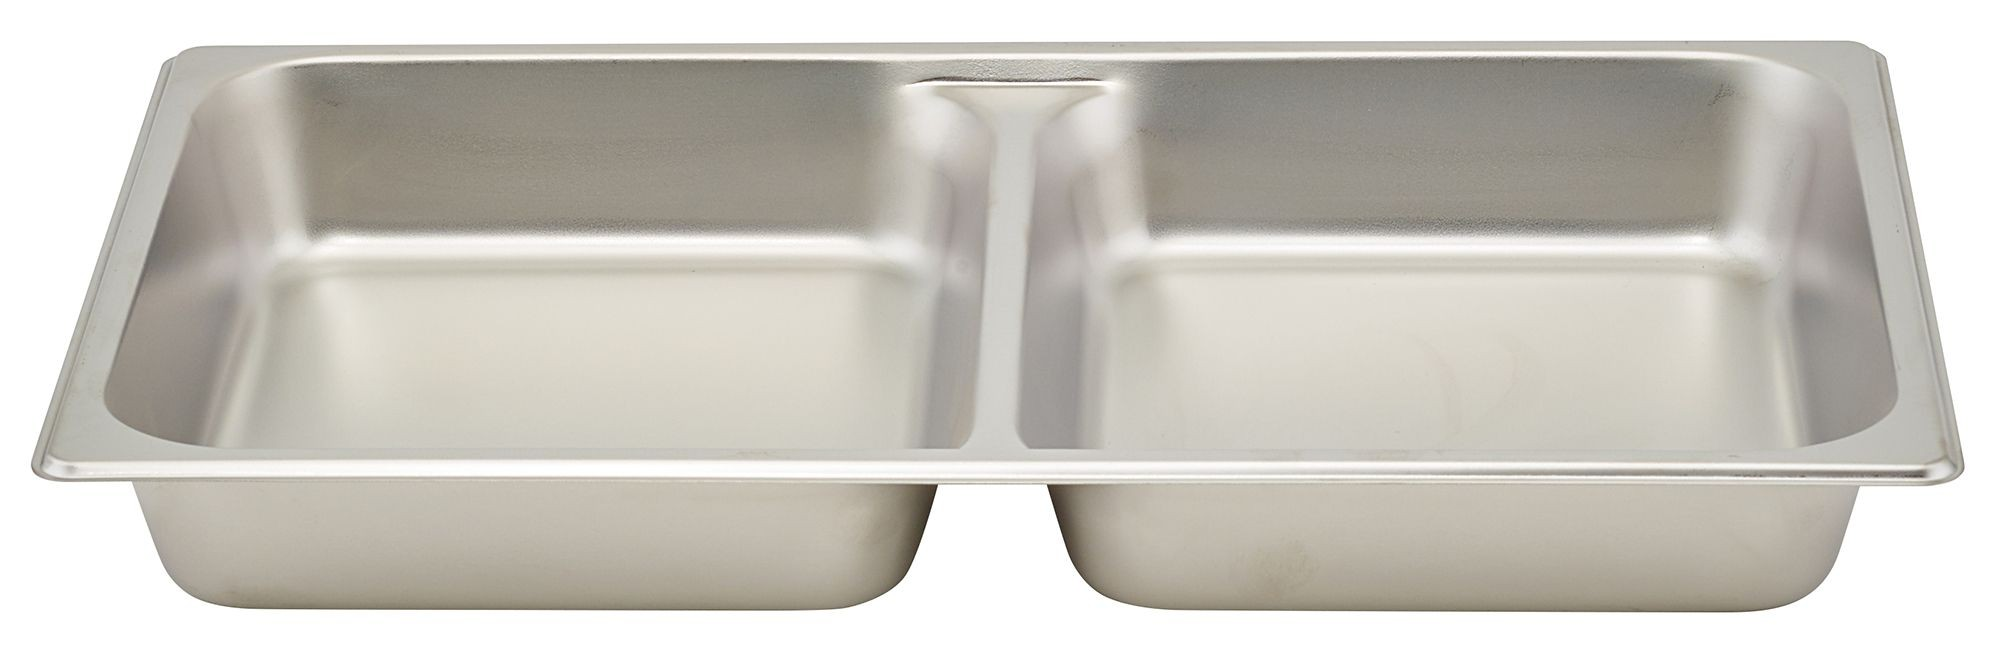 "Winco SPFD2 Stainless Steel Divided Full-Size Steam Table Pan 2-1/2"" Deep"